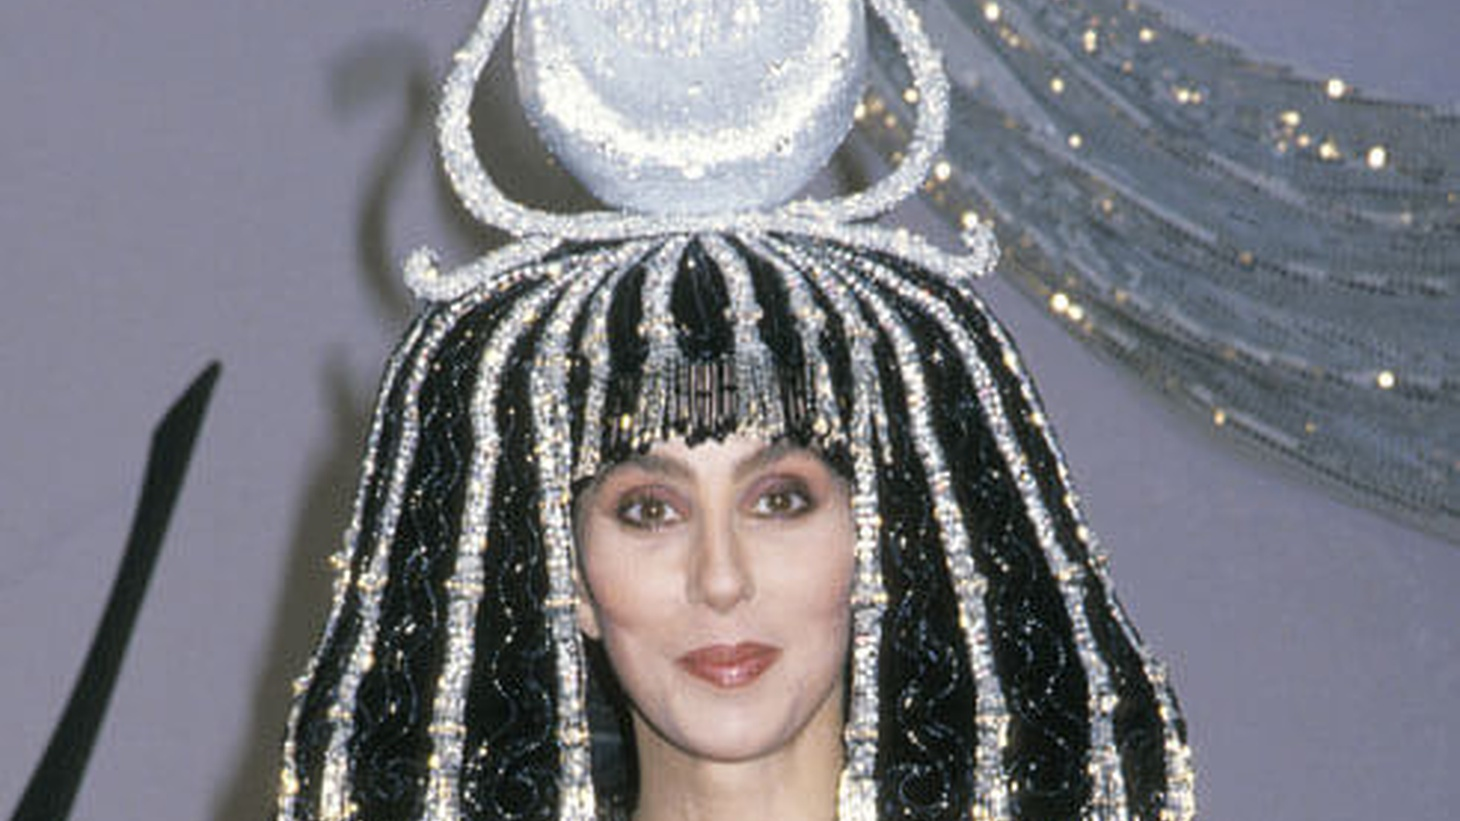 At a 1988 Halloween party in Century City, Cher channeled Cleopatra with a wig-headpiece hybrid that screamed statuesque.